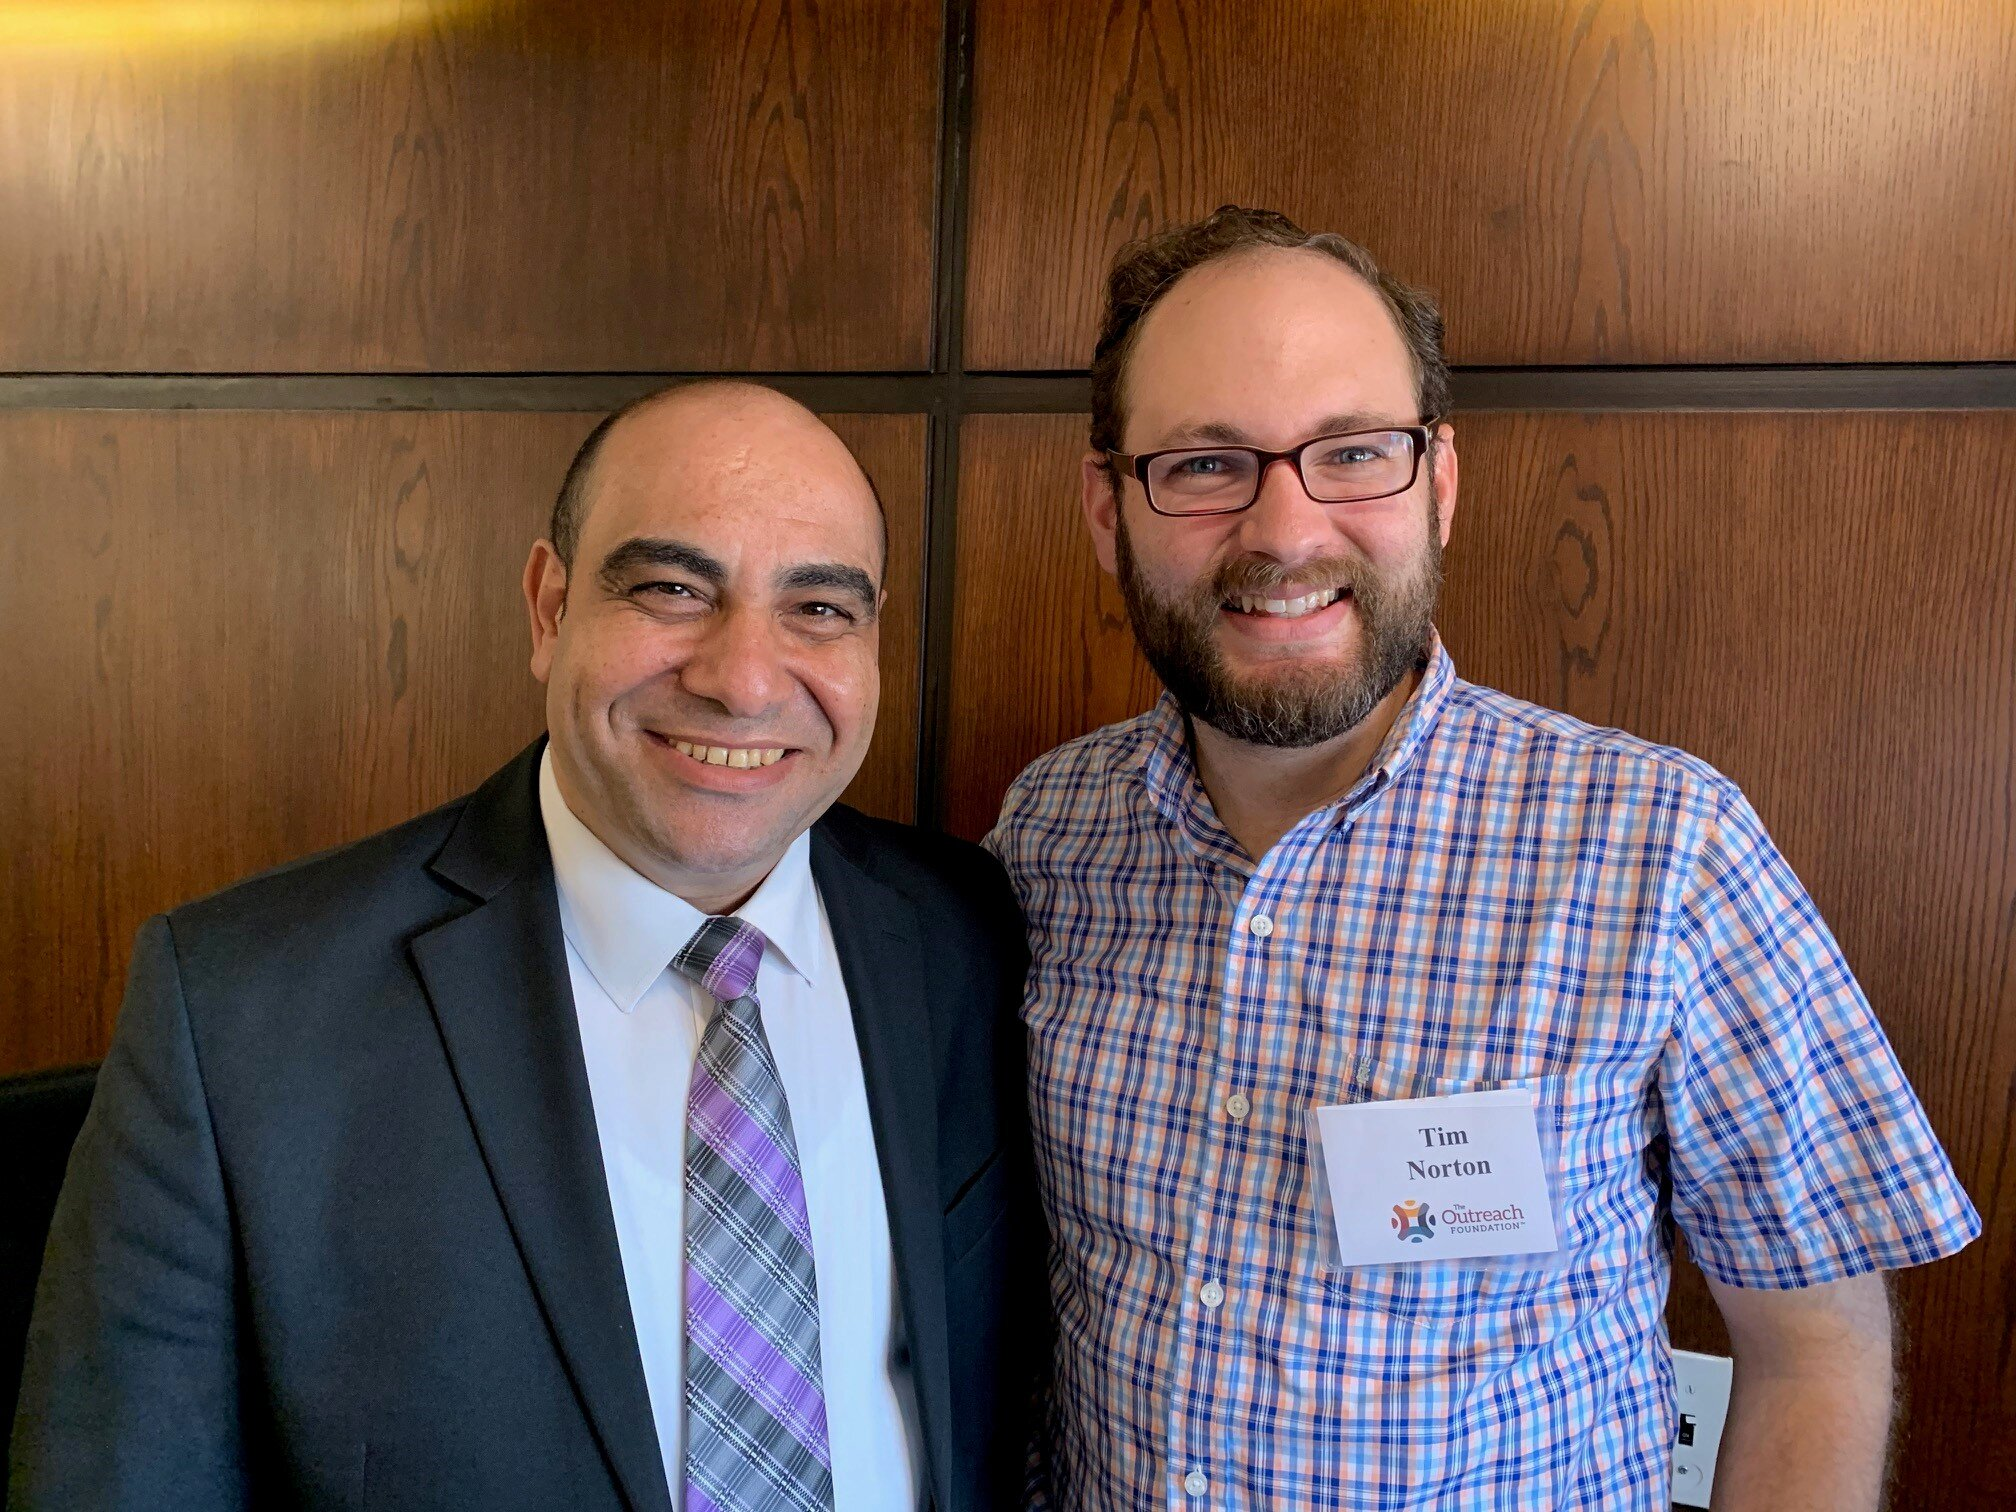 Rev. Nady Labib, Moderator of the Synod of the Nile, with Tim